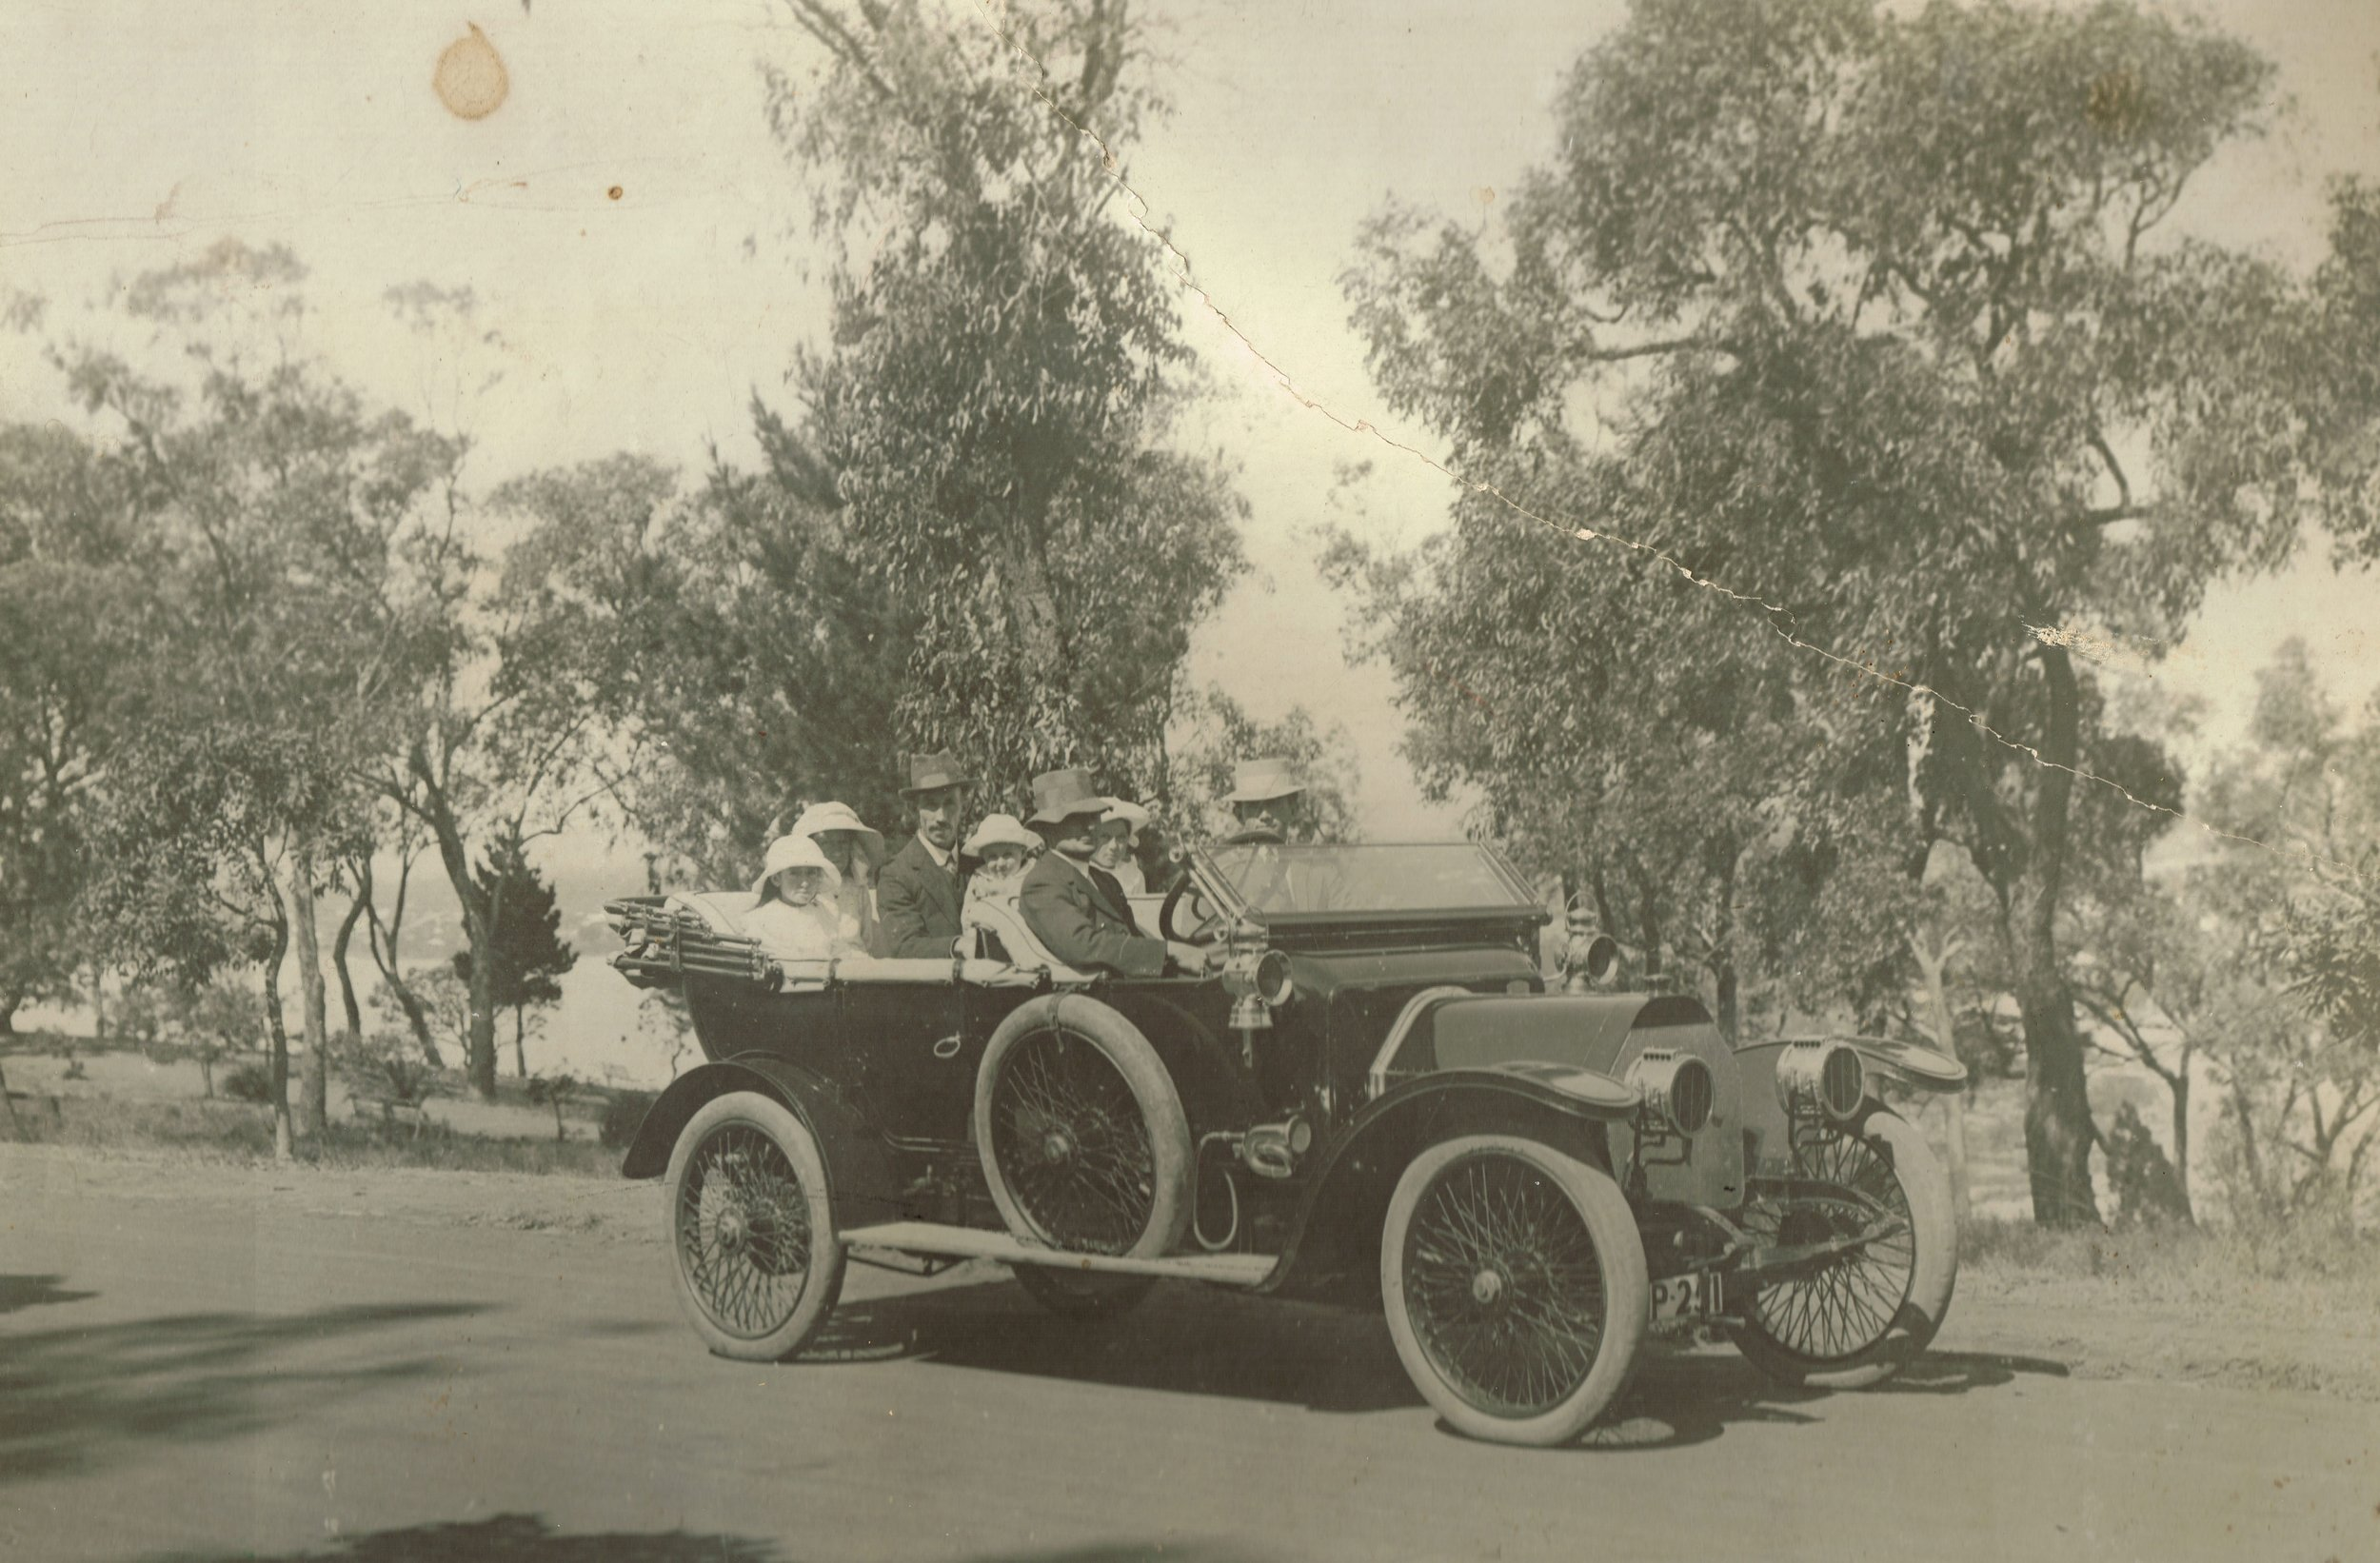 Scat car owned by Crabbe at Kings Park